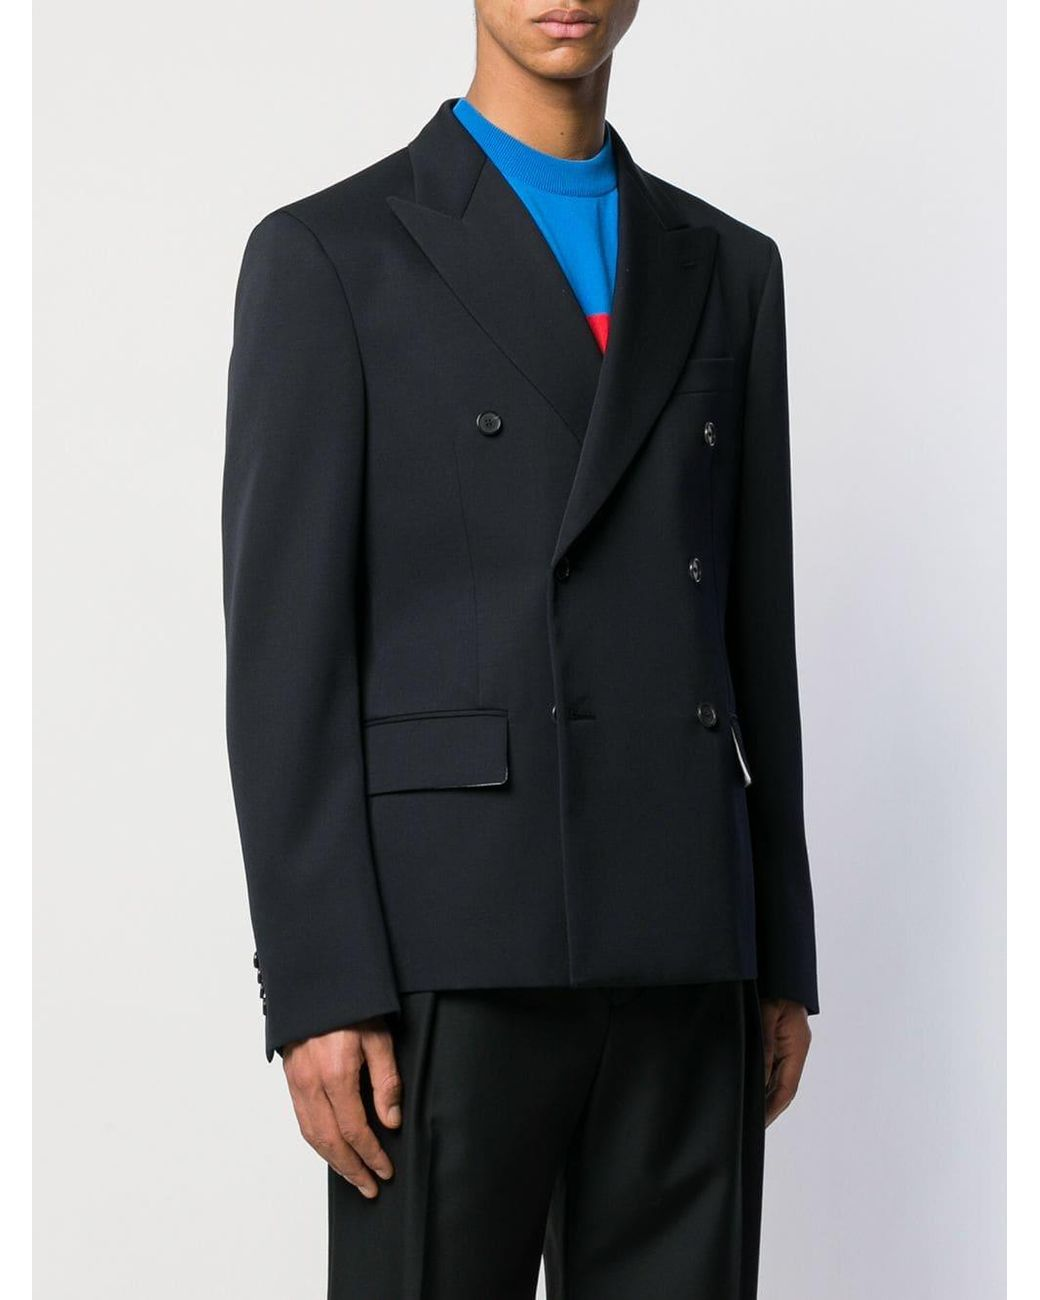 45f63cd5b443 CALVIN KLEIN 205W39NYC Double Breasted Blazer in Blue for Men - Lyst